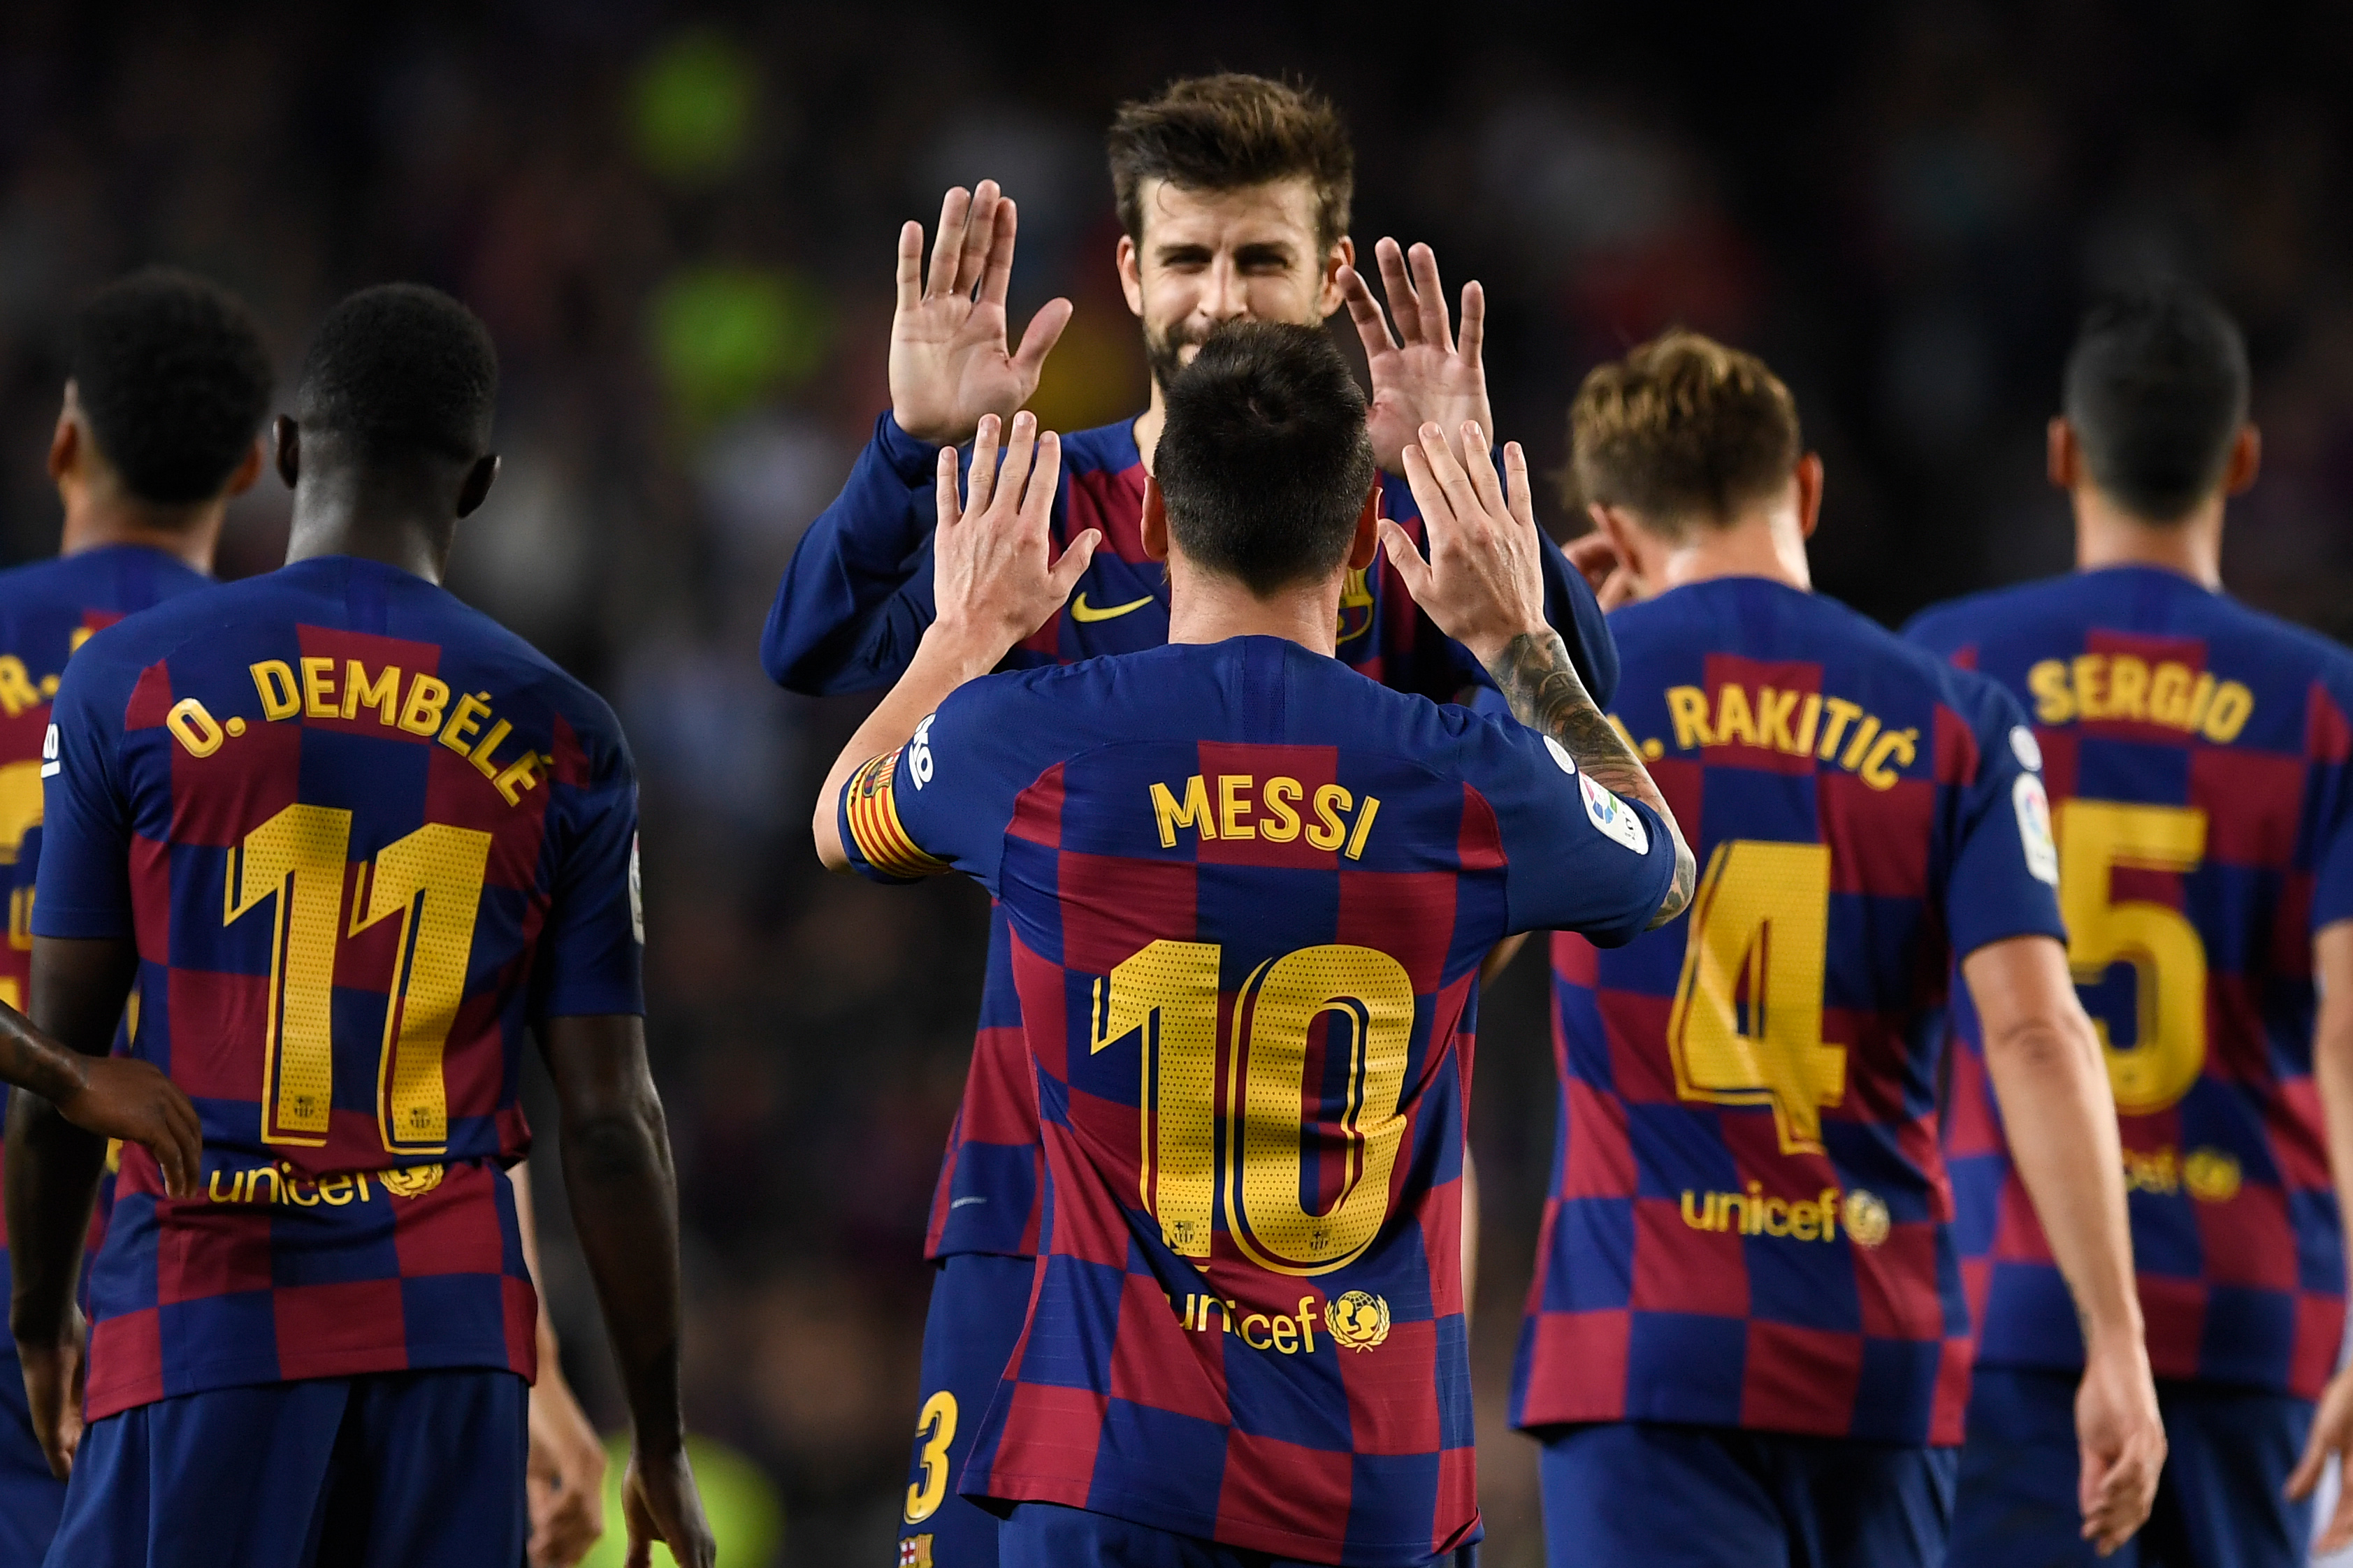 TOPSHOT - Barcelona's Argentine forward Lionel Messi celebrates his goal with Barcelona's Spanish defender Gerard Pique during the Spanish league football match between FC Barcelona and Sevilla FC at the Camp Nou stadium in Barcelona on October 6, 2019. (Photo by Josep LAGO / AFP) (Photo by JOSEP LAGO/AFP via Getty Images)